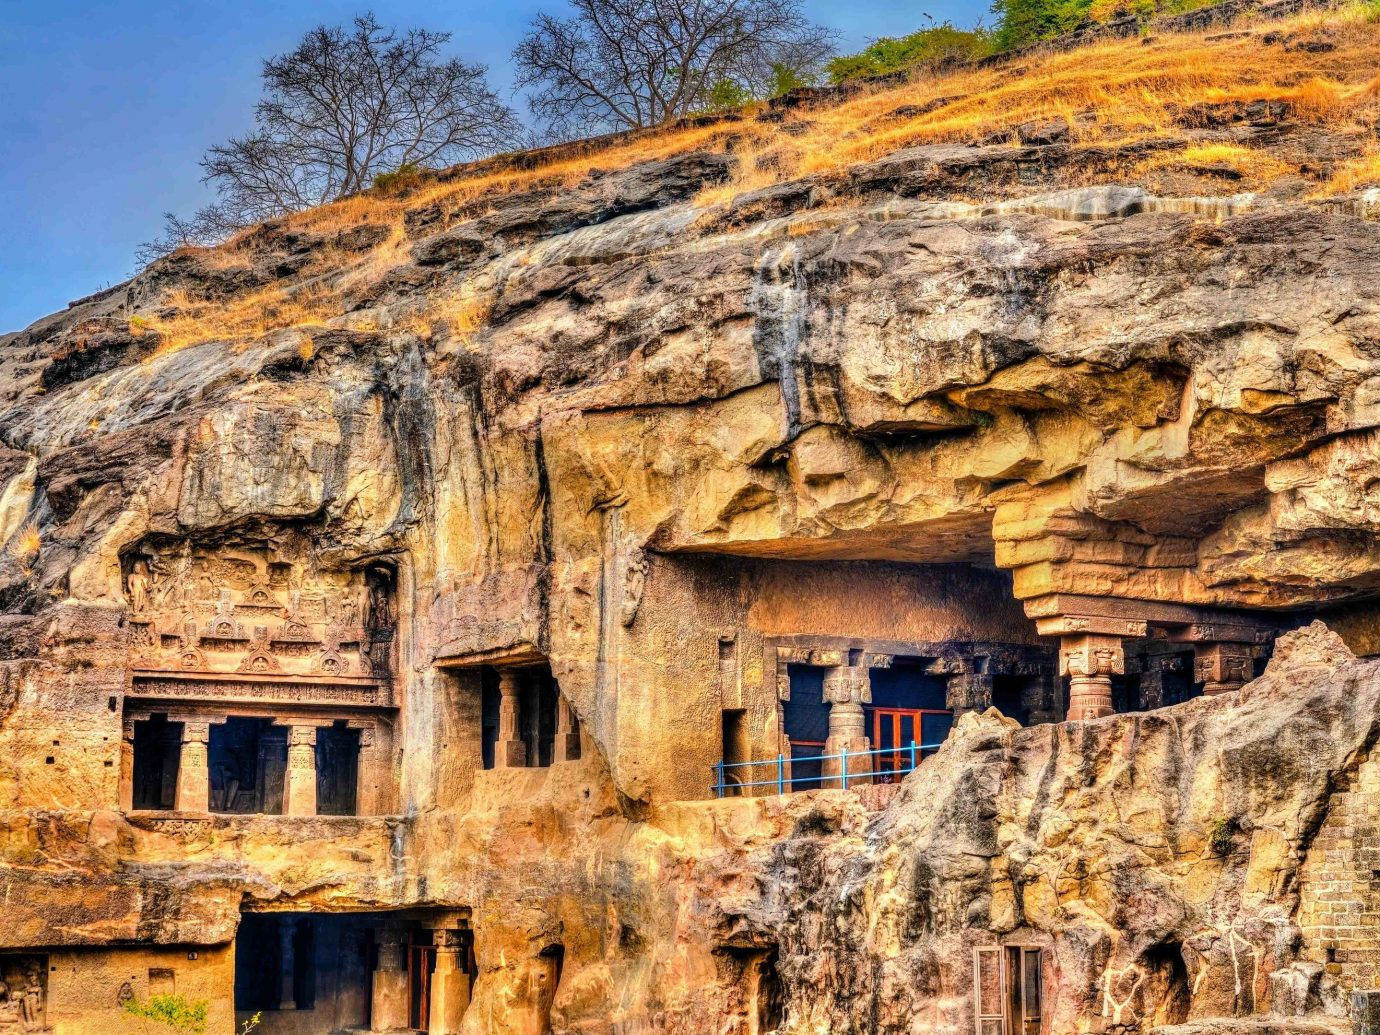 India historic site archaeological site Ruins rock bedrock outcrop formation ancient history escarpment unesco world heritage site badlands geology sky sill facade cliff